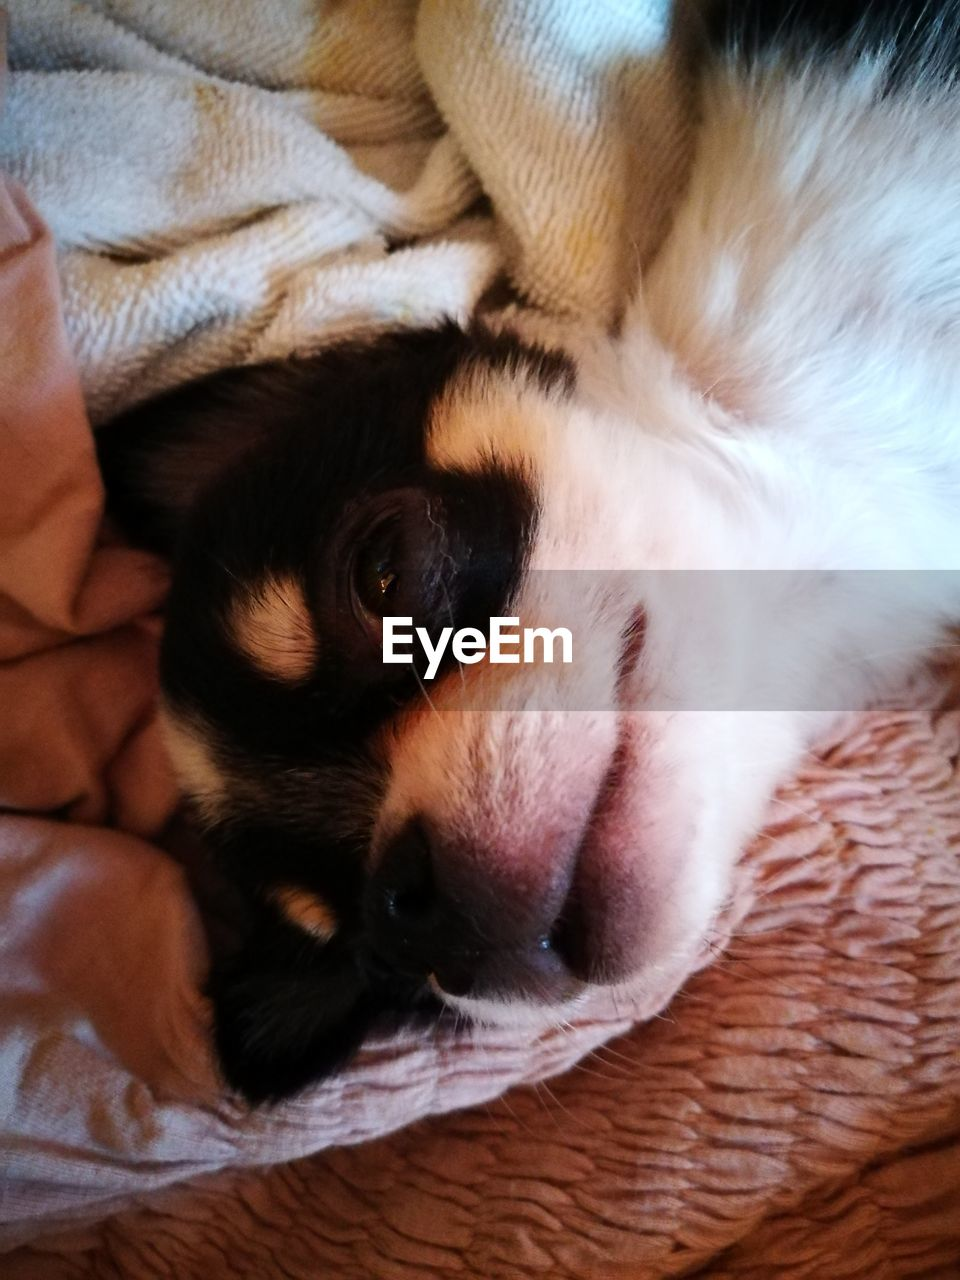 mammal, one animal, domestic, animal themes, pets, domestic animals, relaxation, animal, vertebrate, canine, dog, resting, indoors, sleeping, close-up, no people, bed, furniture, eyes closed, animal body part, animal head, whisker